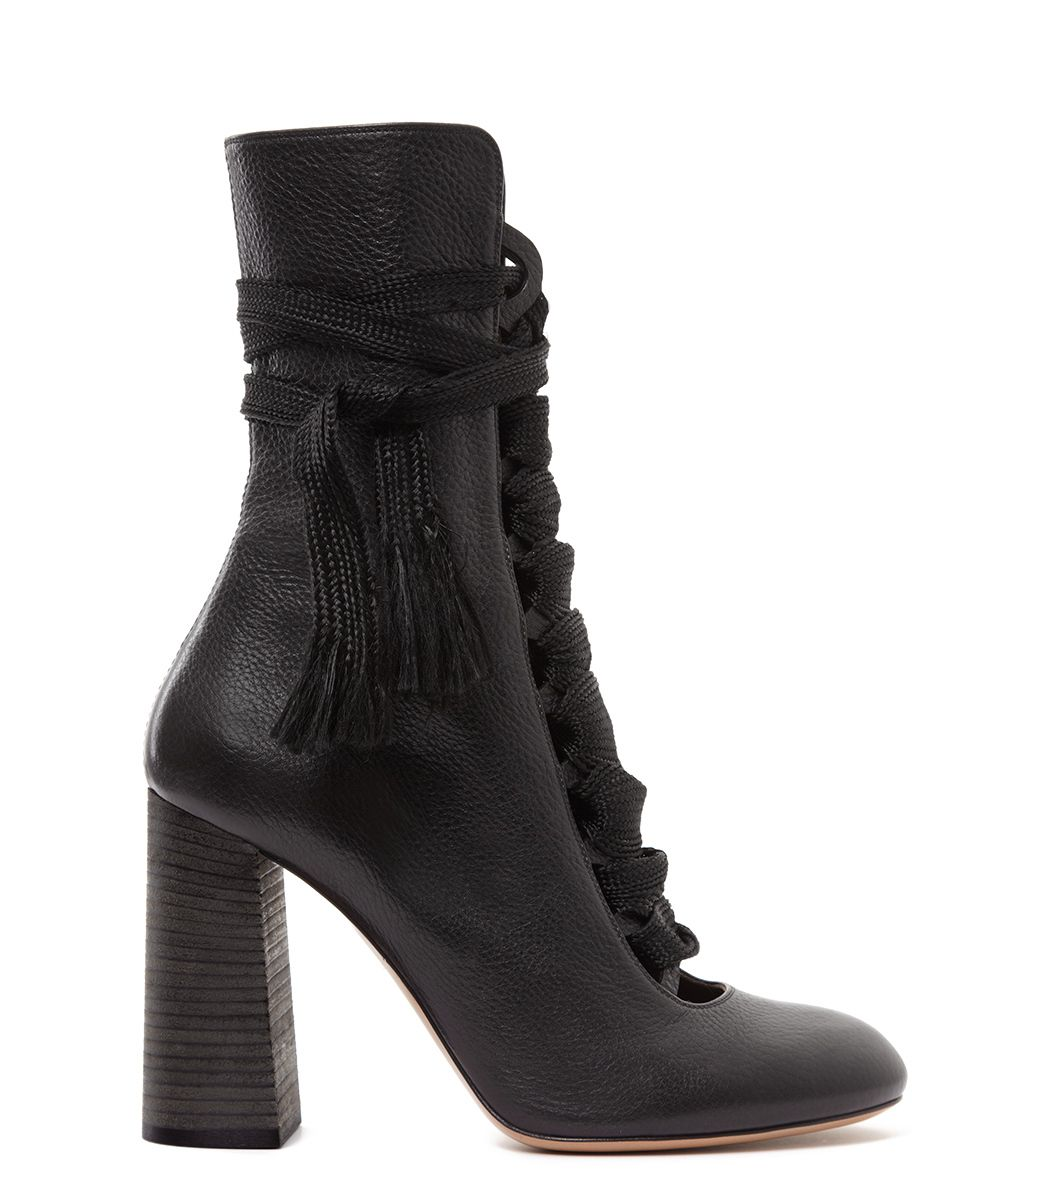 Chloe Lace-Up Ankle Boot